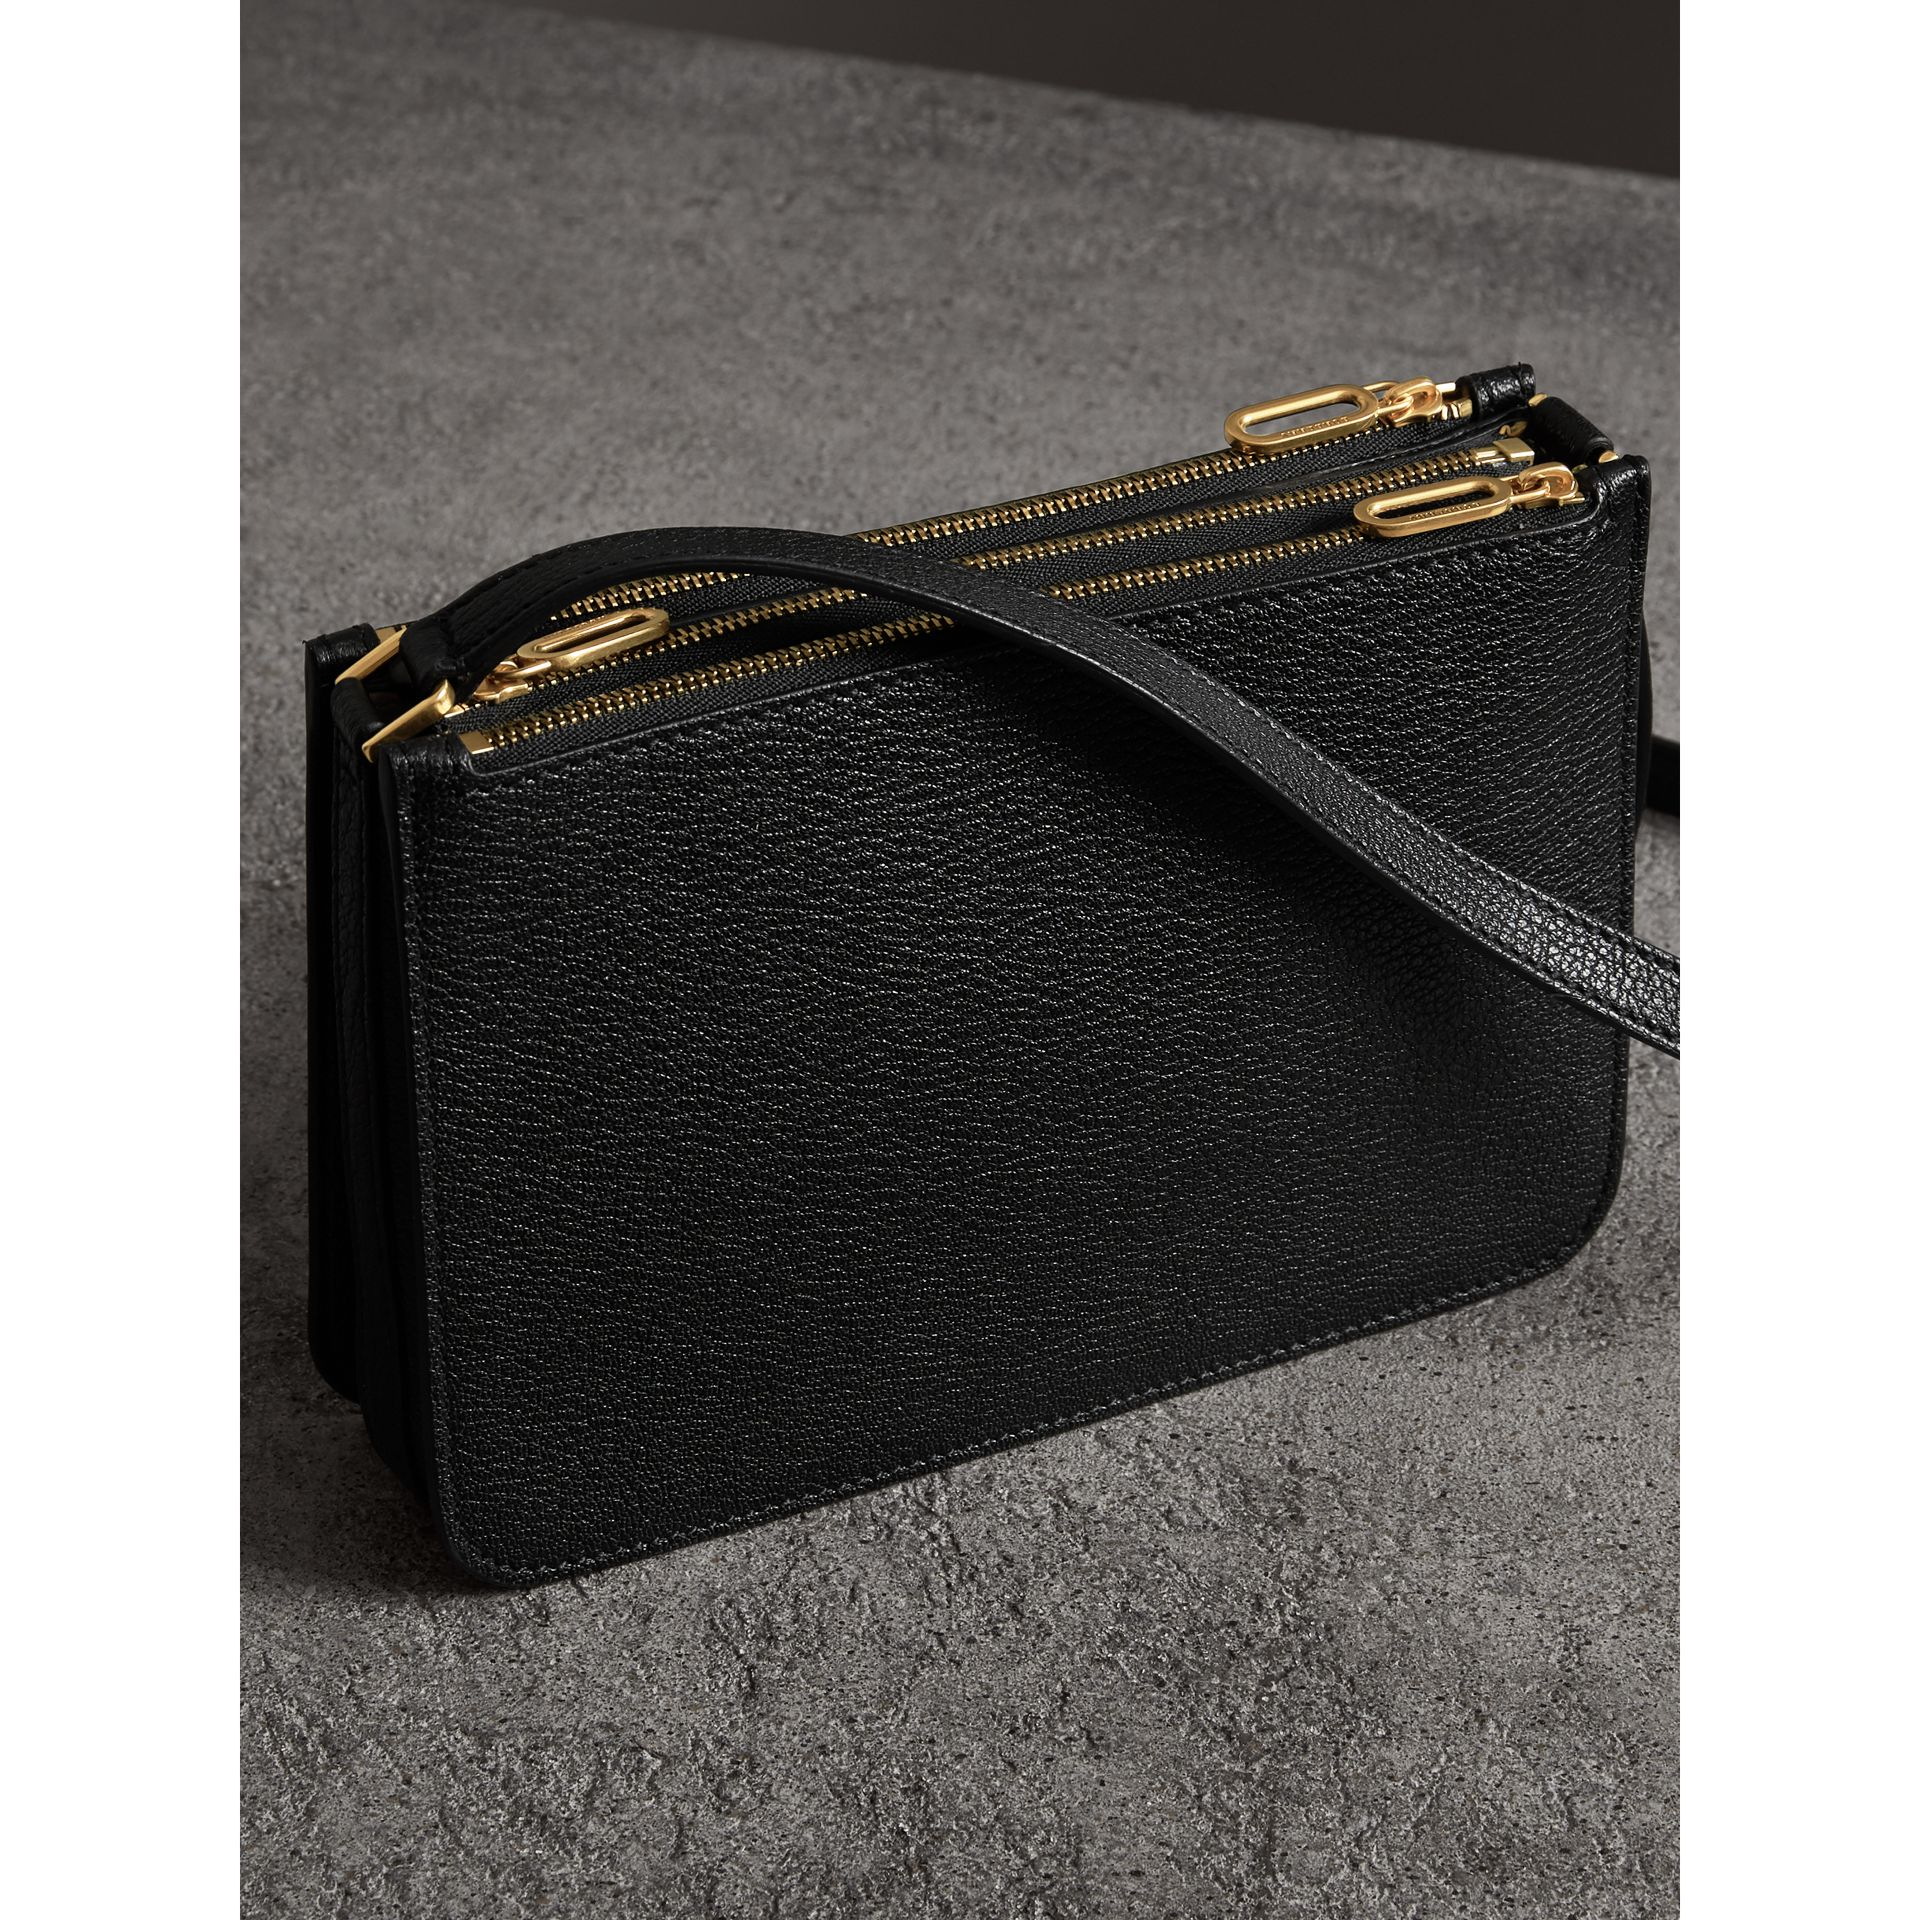 Triple Zip Grainy Leather Crossbody Bag in Black/gold - Women | Burberry United Kingdom - gallery image 4